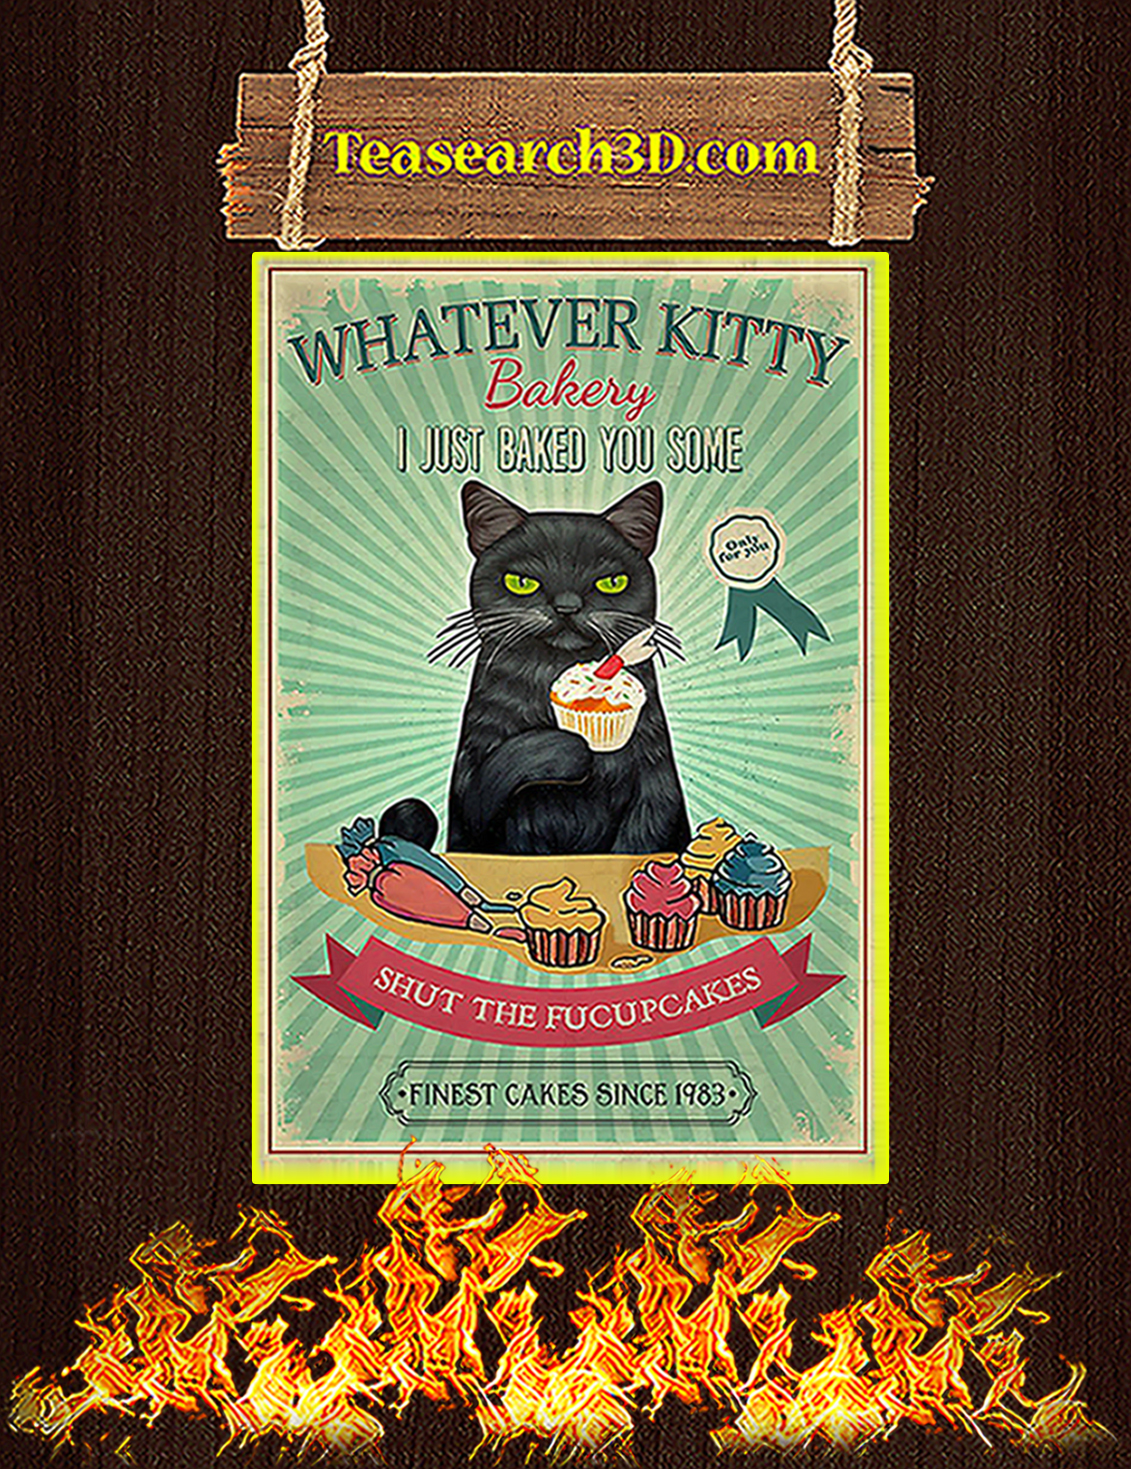 Whatever kitty bakery I just baked you some poster A3